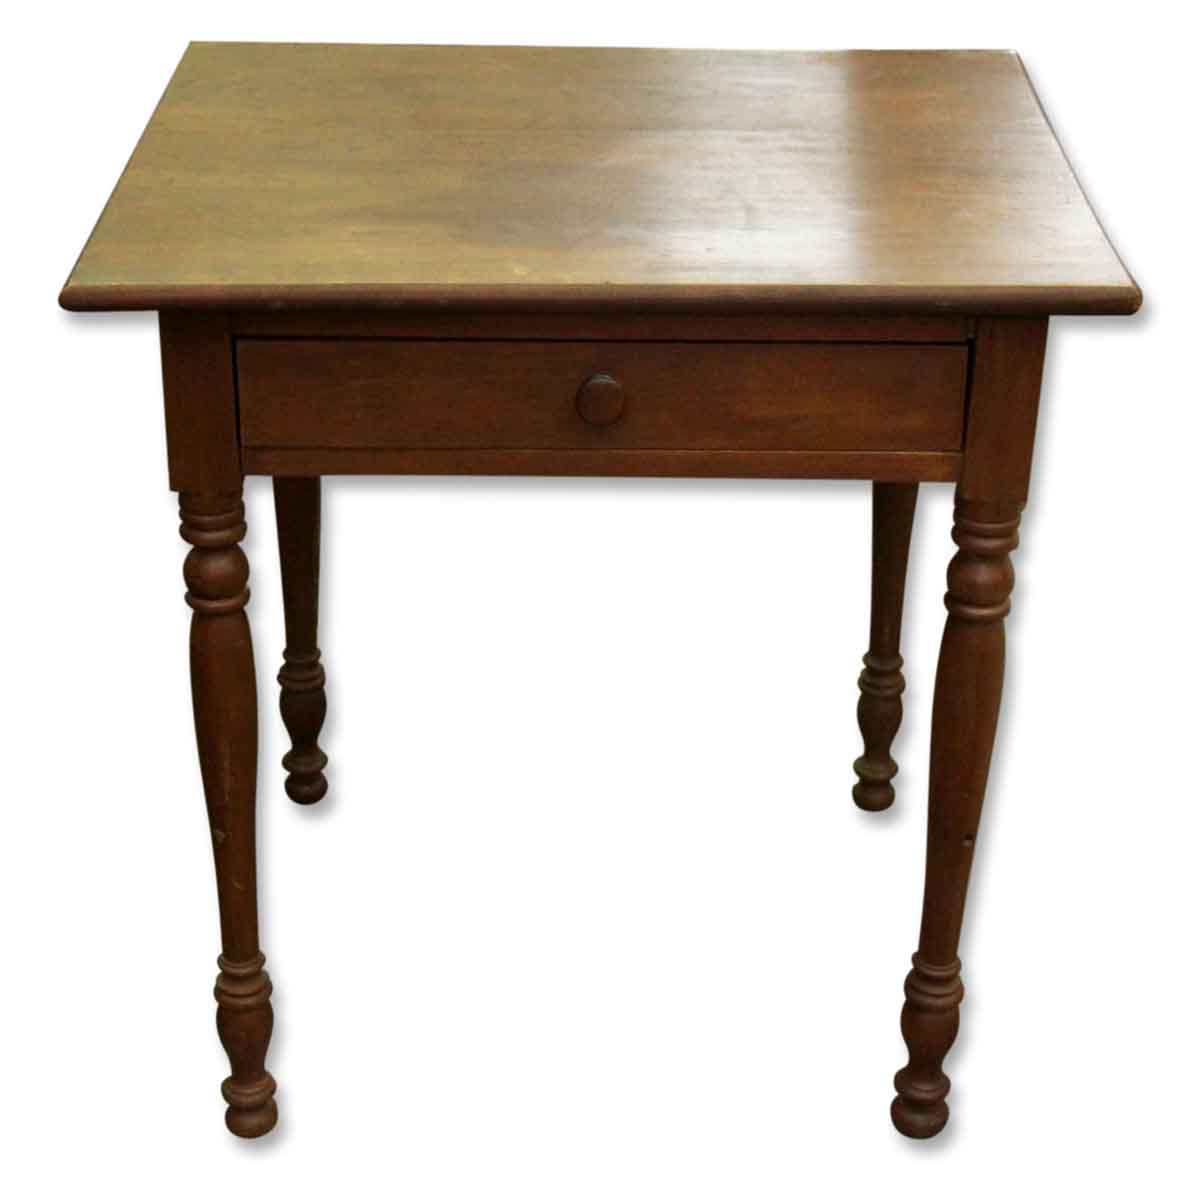 1880s pine side table olde good things - Antique side tables for living room ...